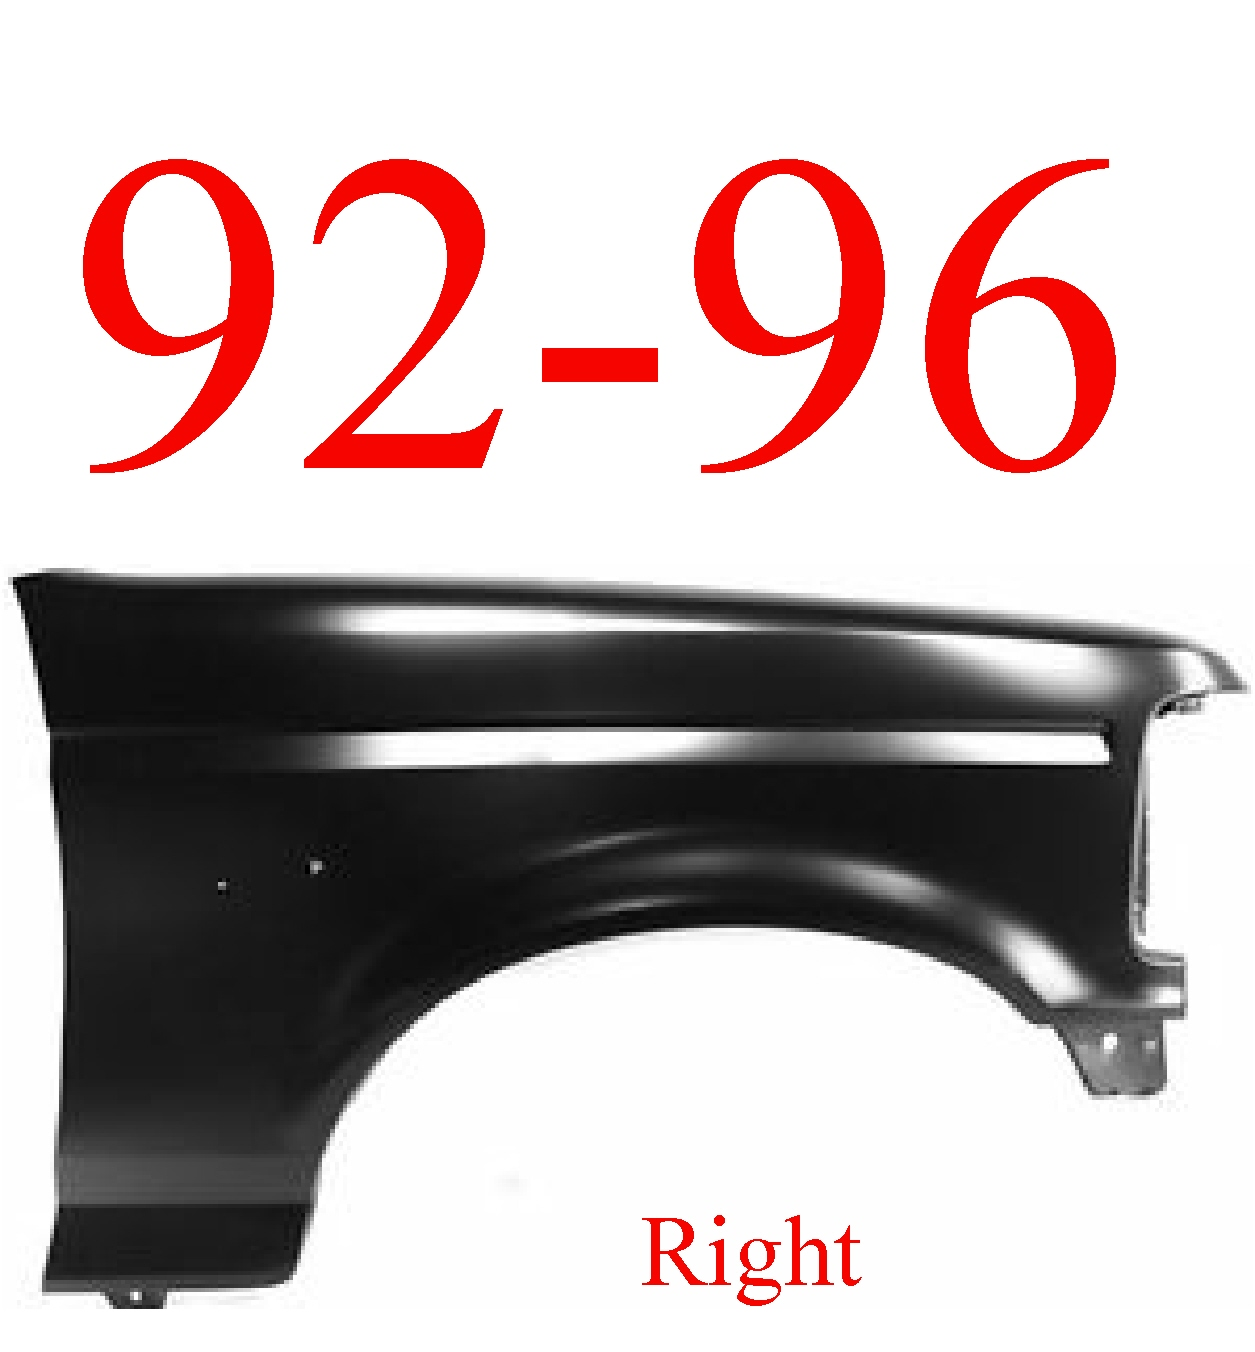 92-96 Ford Right Fender 97 98 F450